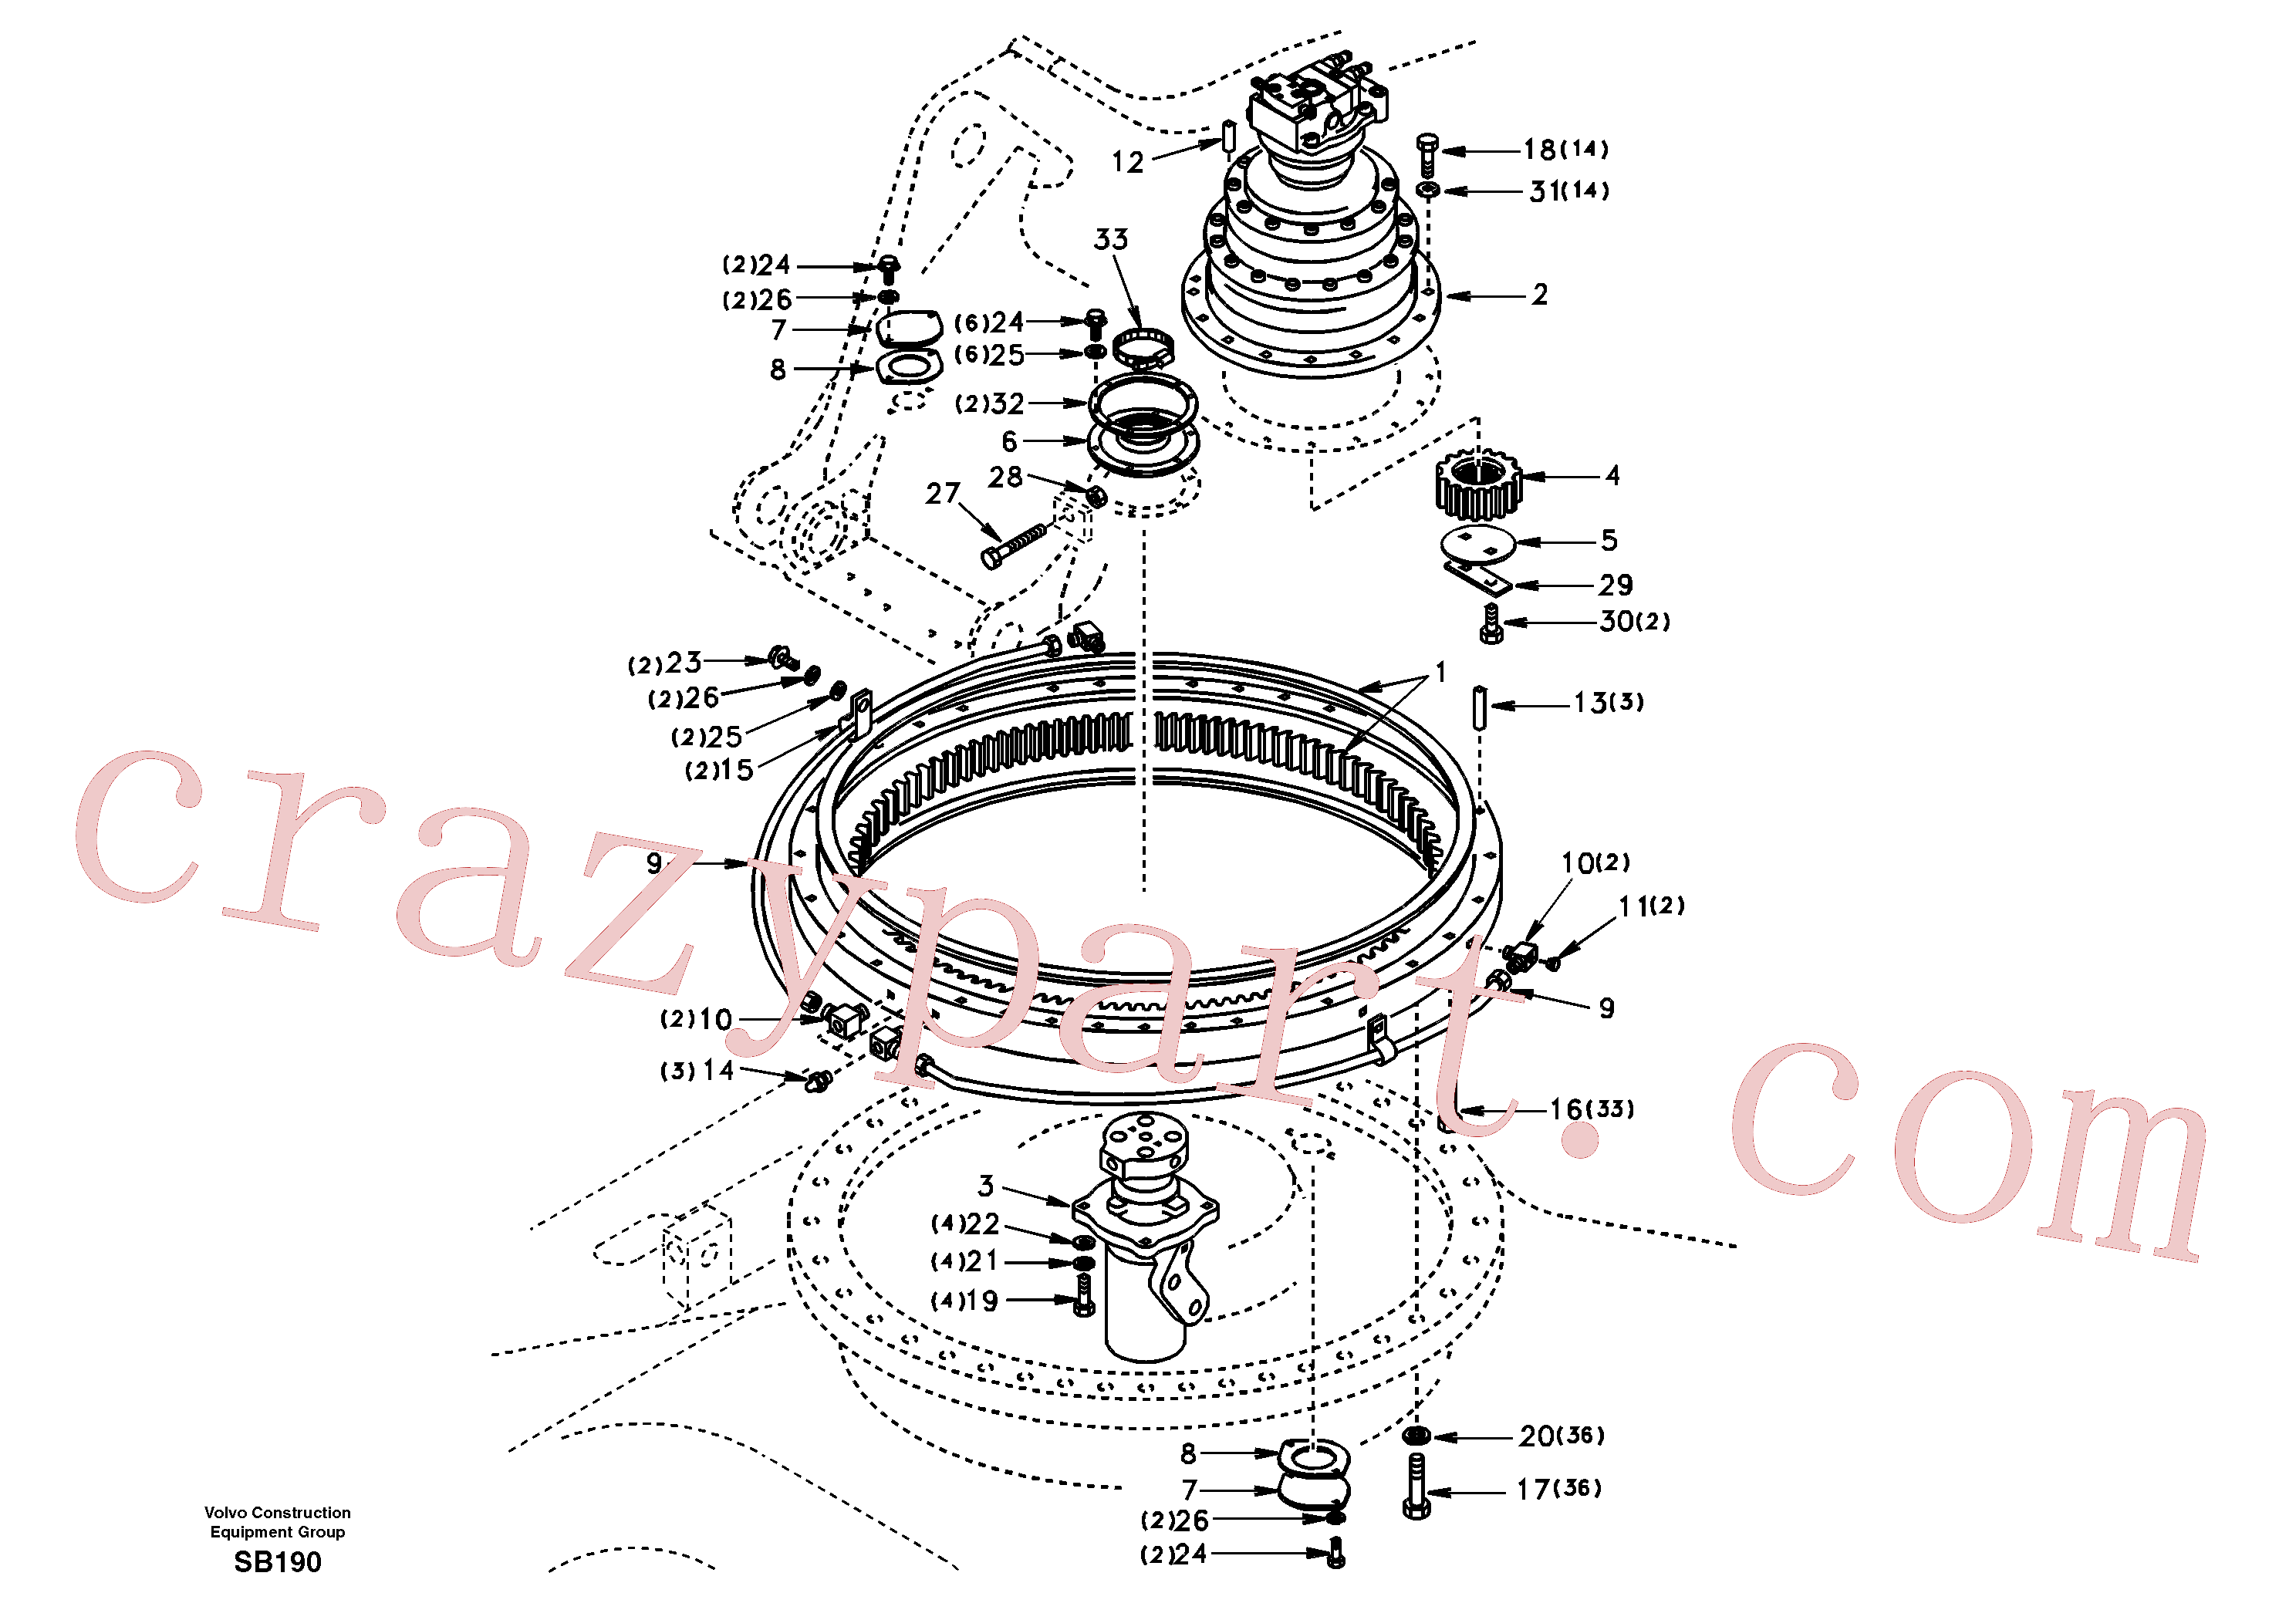 VOE14511866 for Volvo Swing system(SB190 assembly)